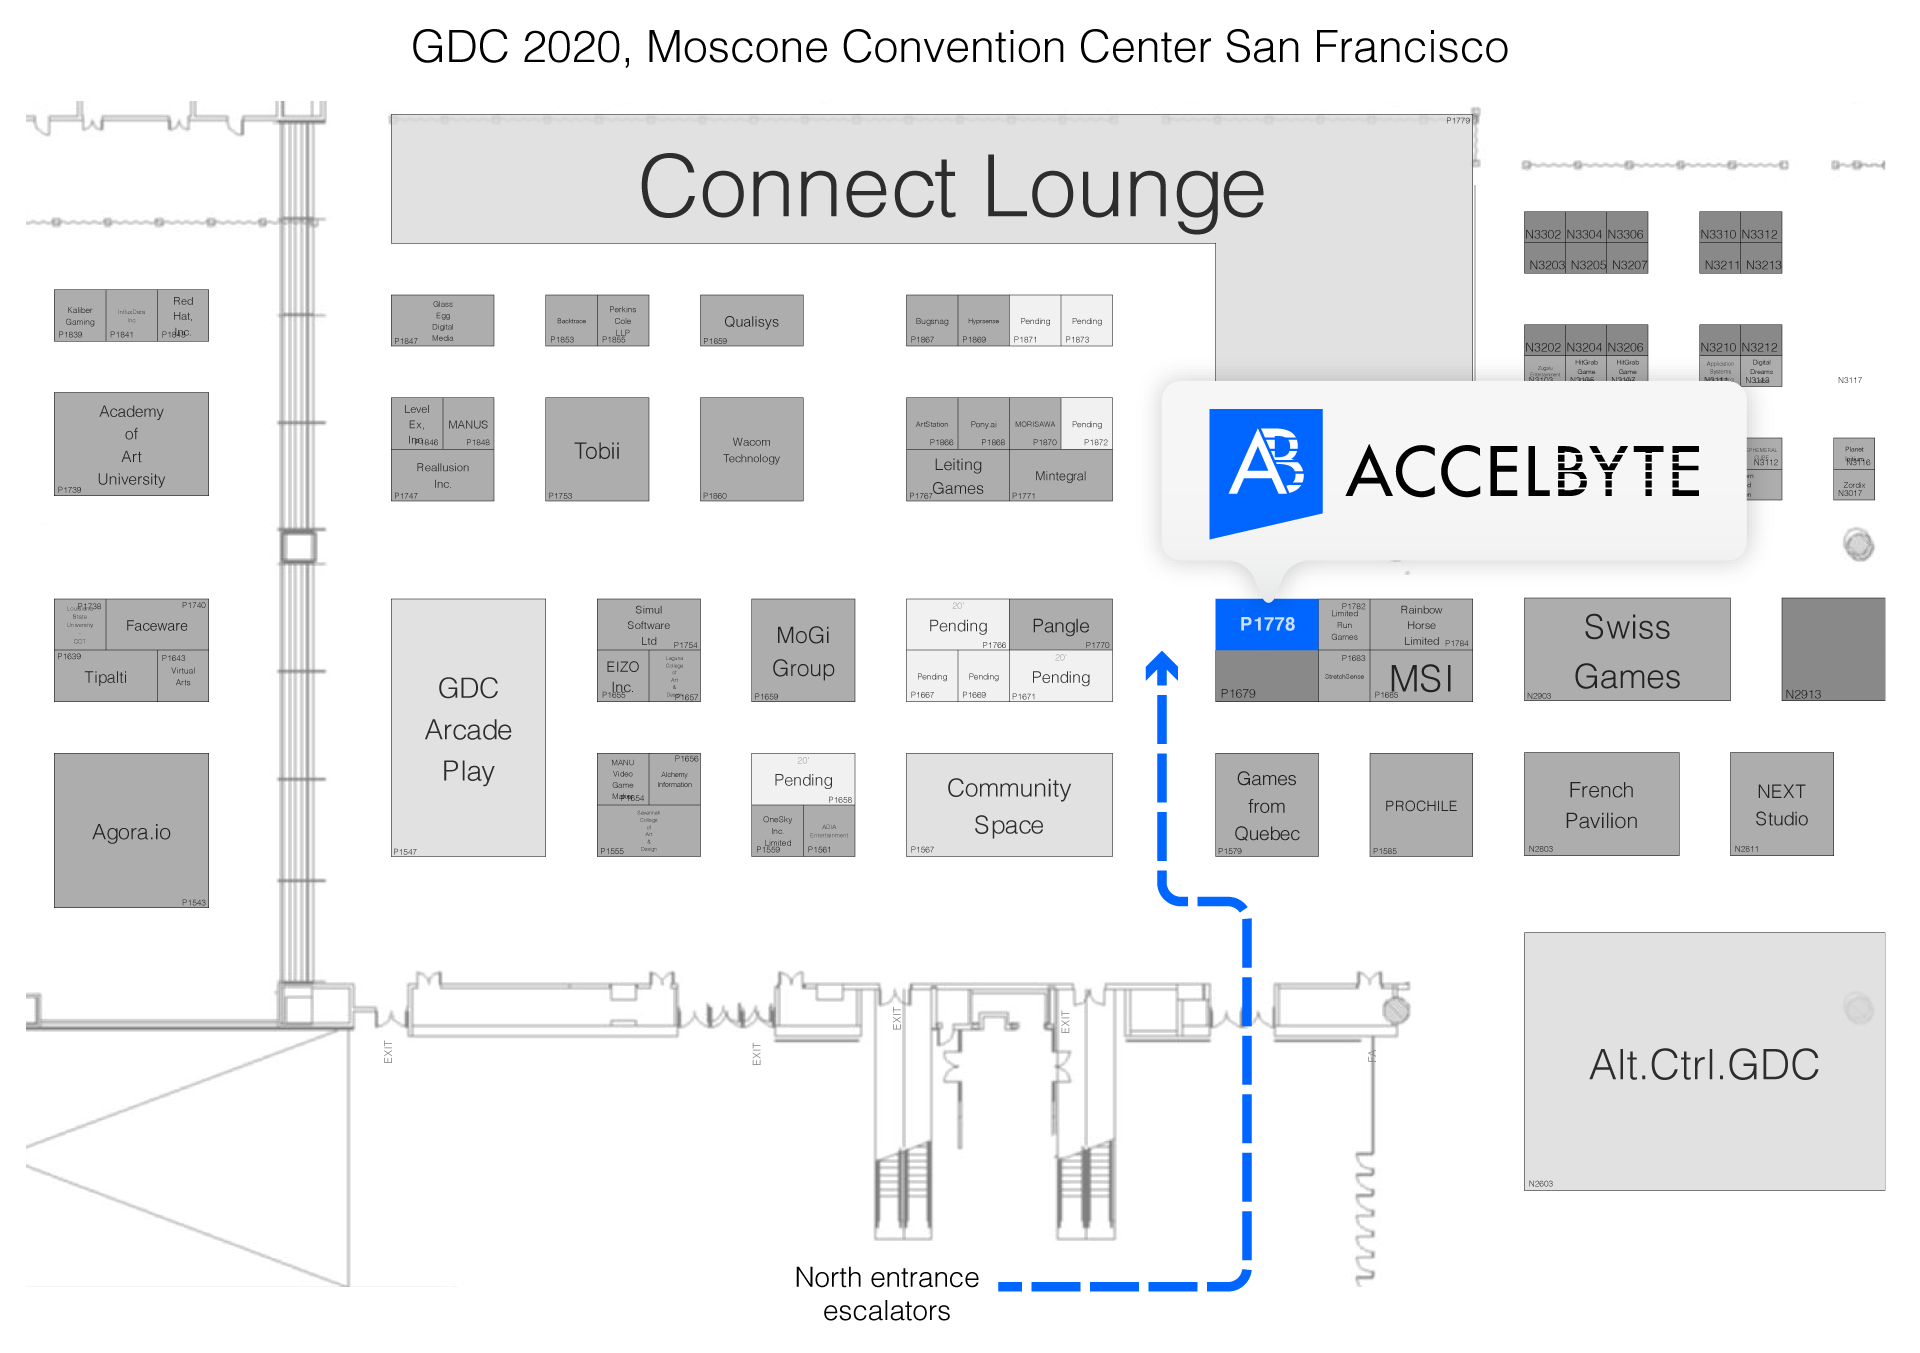 GDC 2020 Floor Plan